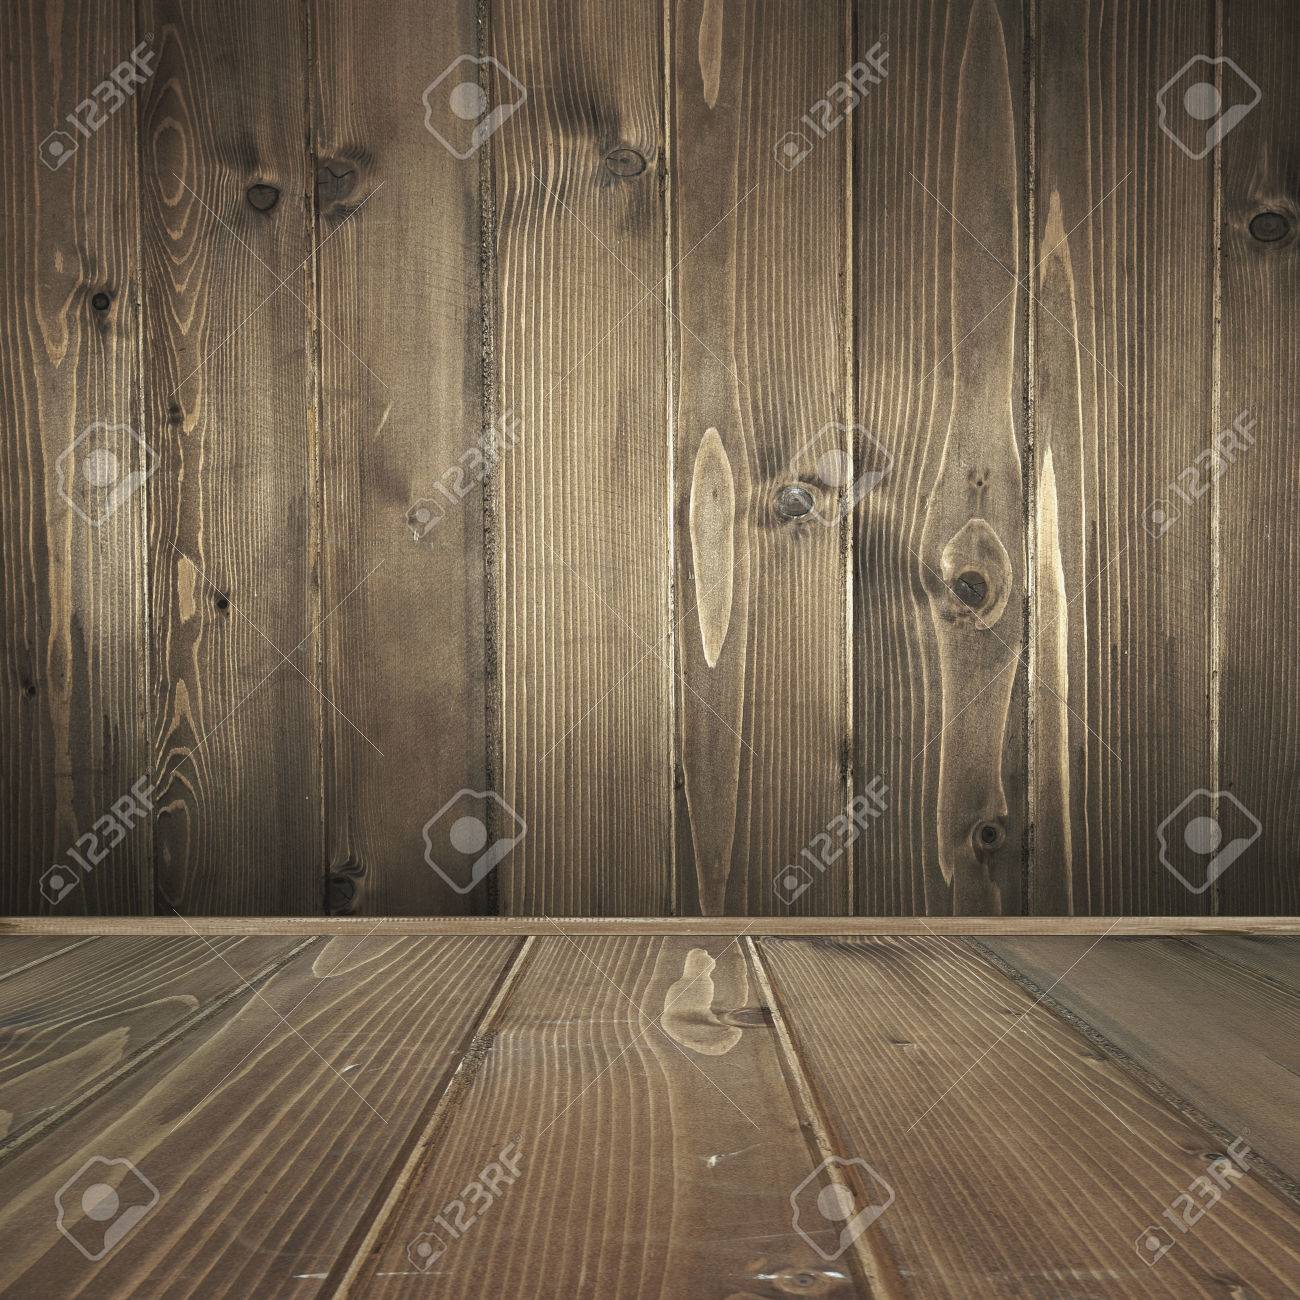 for wall with interiors modern homes entry reclaiming wood reclaimed interior barn s barns uncommon today walls